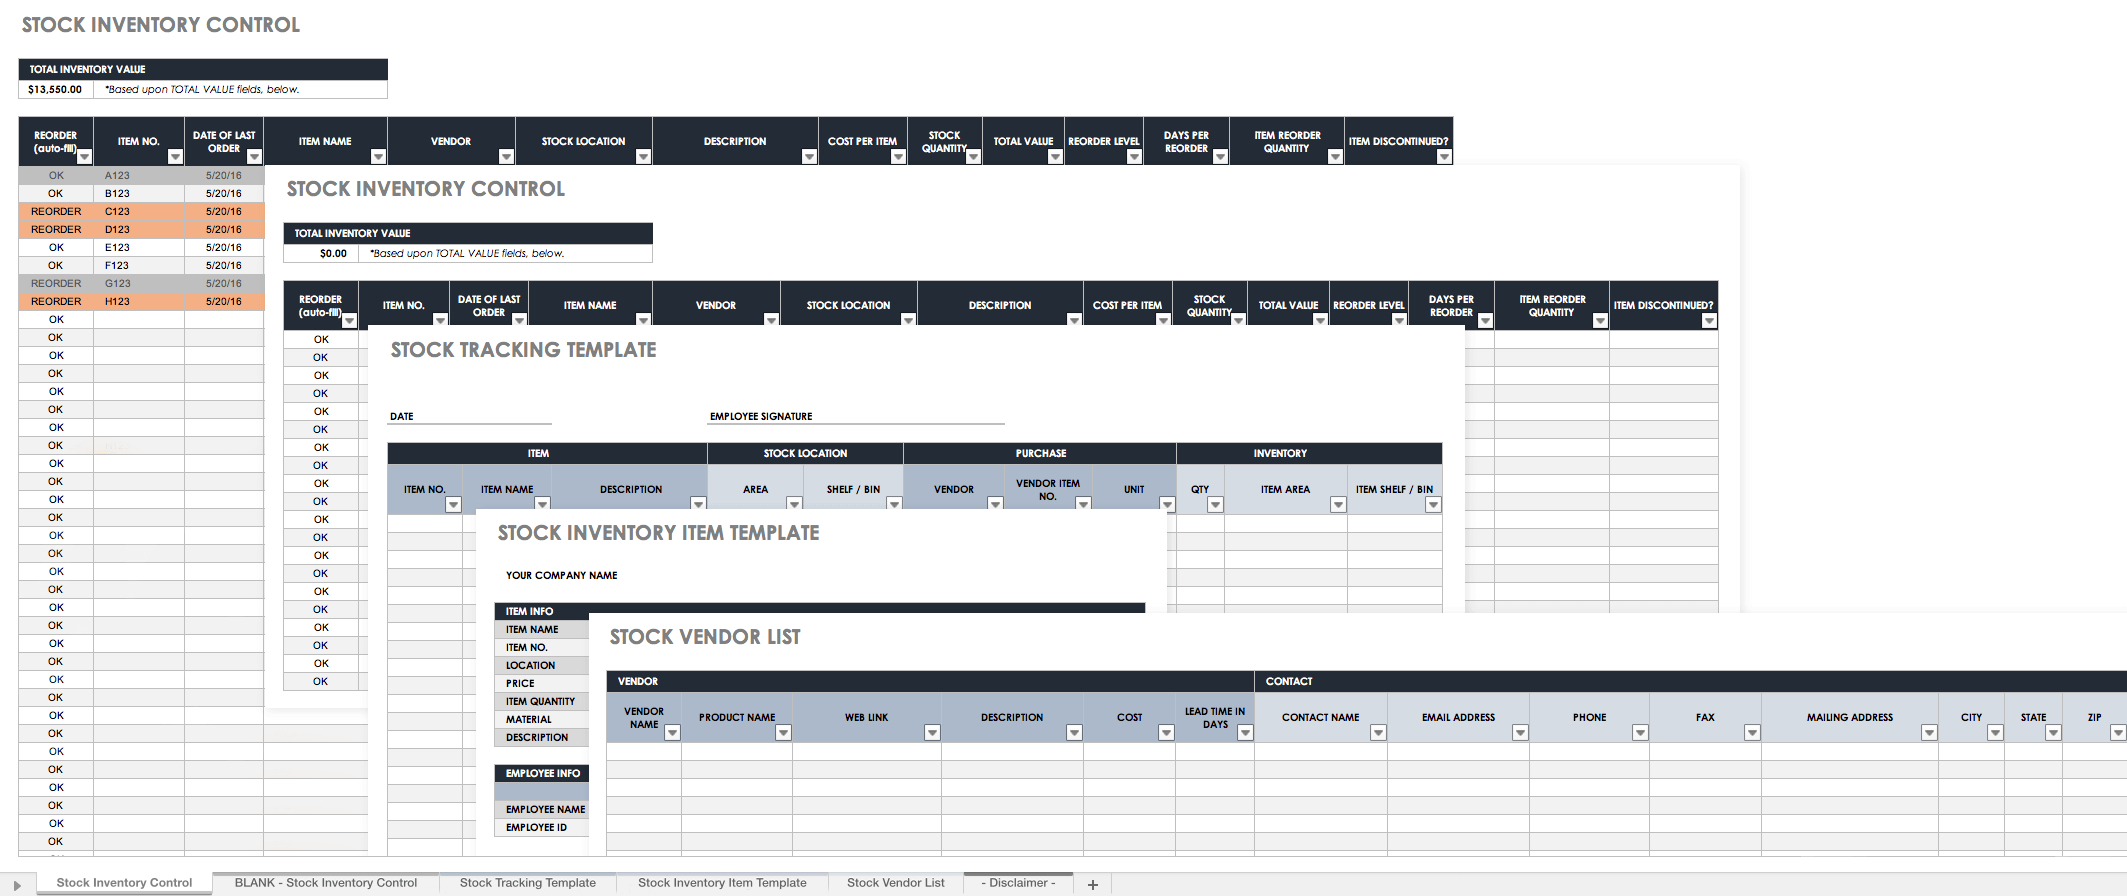 Free Excel Inventory Templates: Create & Manage | Smartsheet Within Inventory Tracking Spreadsheet Template Free